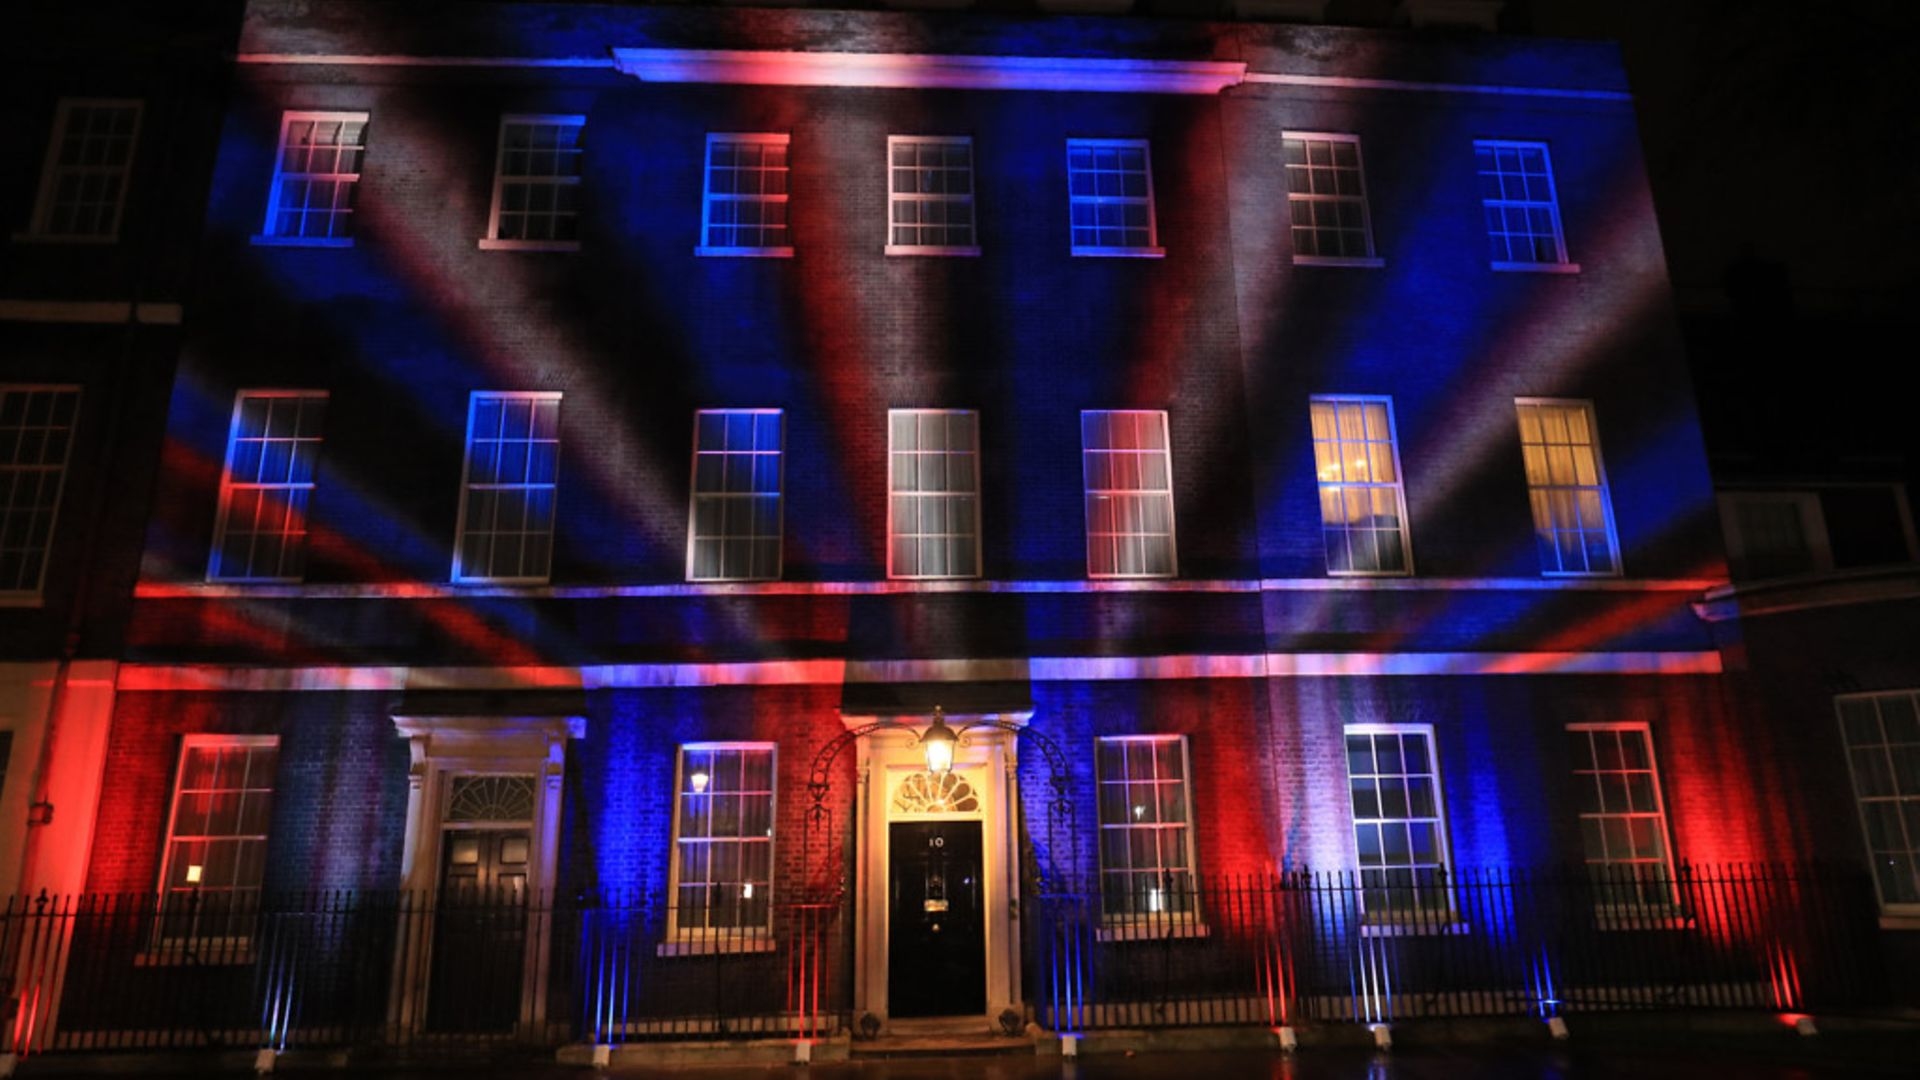 The union flag colours projected onto 10 Downing Street, to mark Brexit - Credit: PA